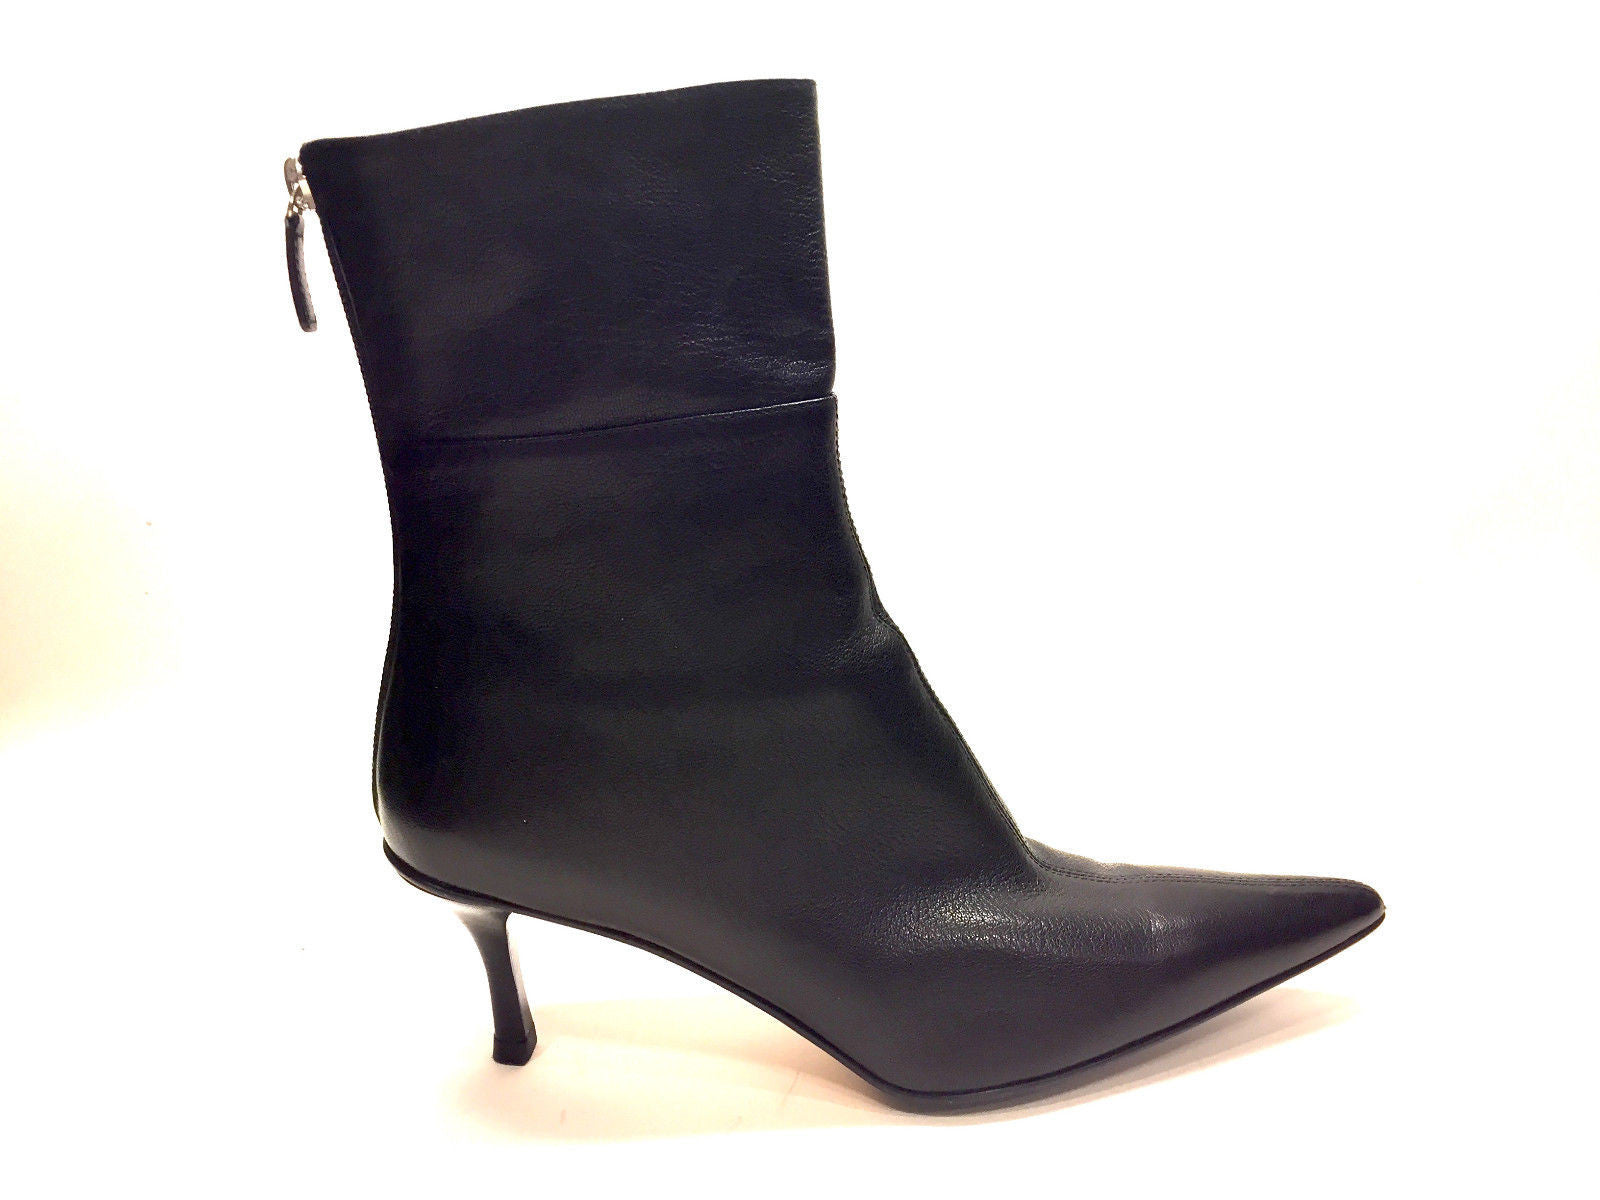 20710ed83 ... bisbiz.com GUCCI Black Grained Leather Medium Heel Ankle Boots/Booties  Size: 8.5 ...